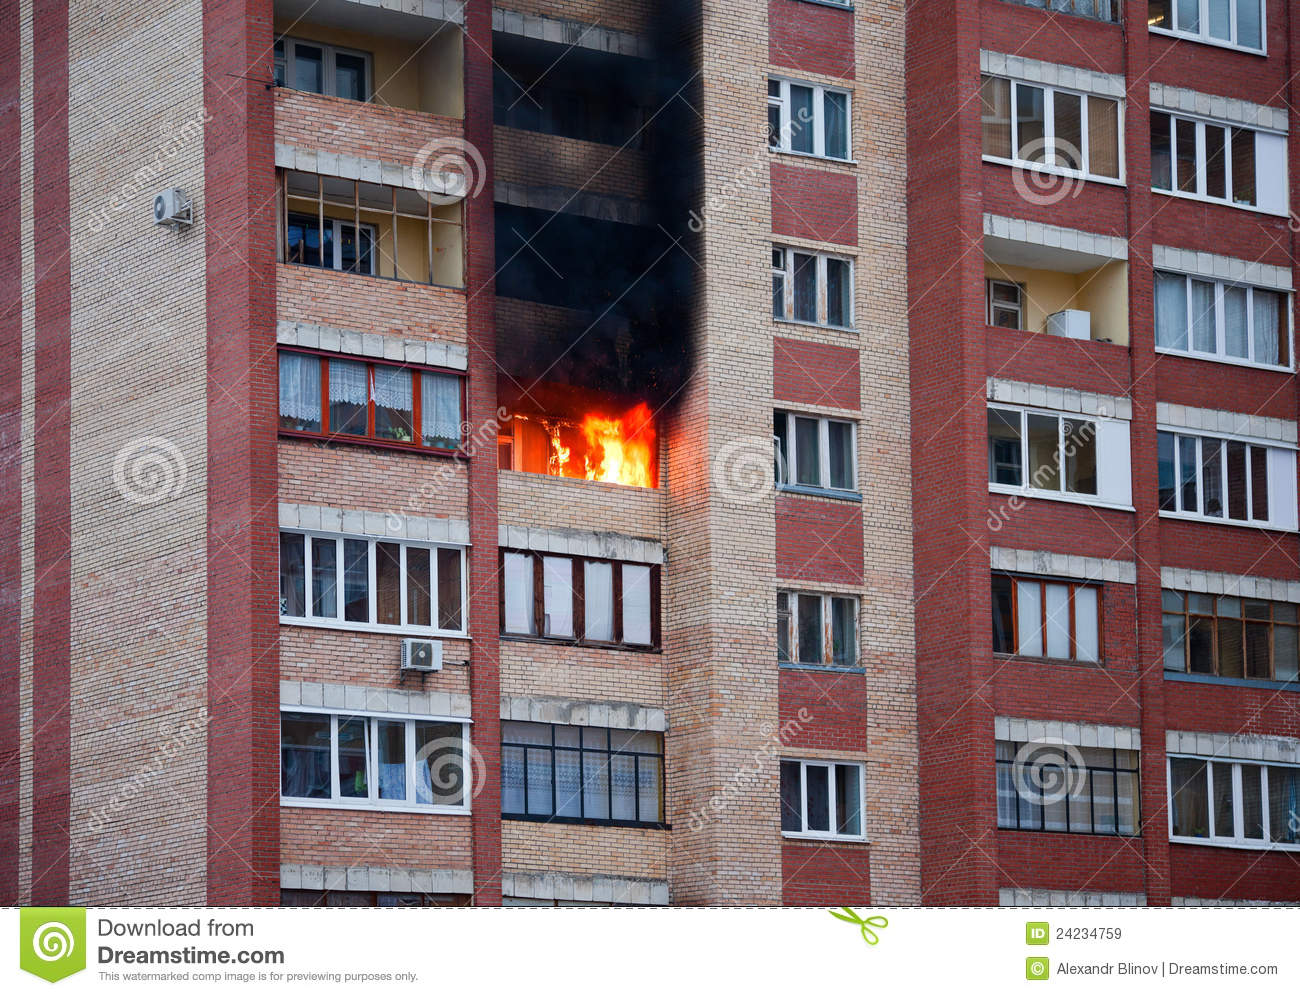 Fire in the house royalty free stock images - image: 2423475.